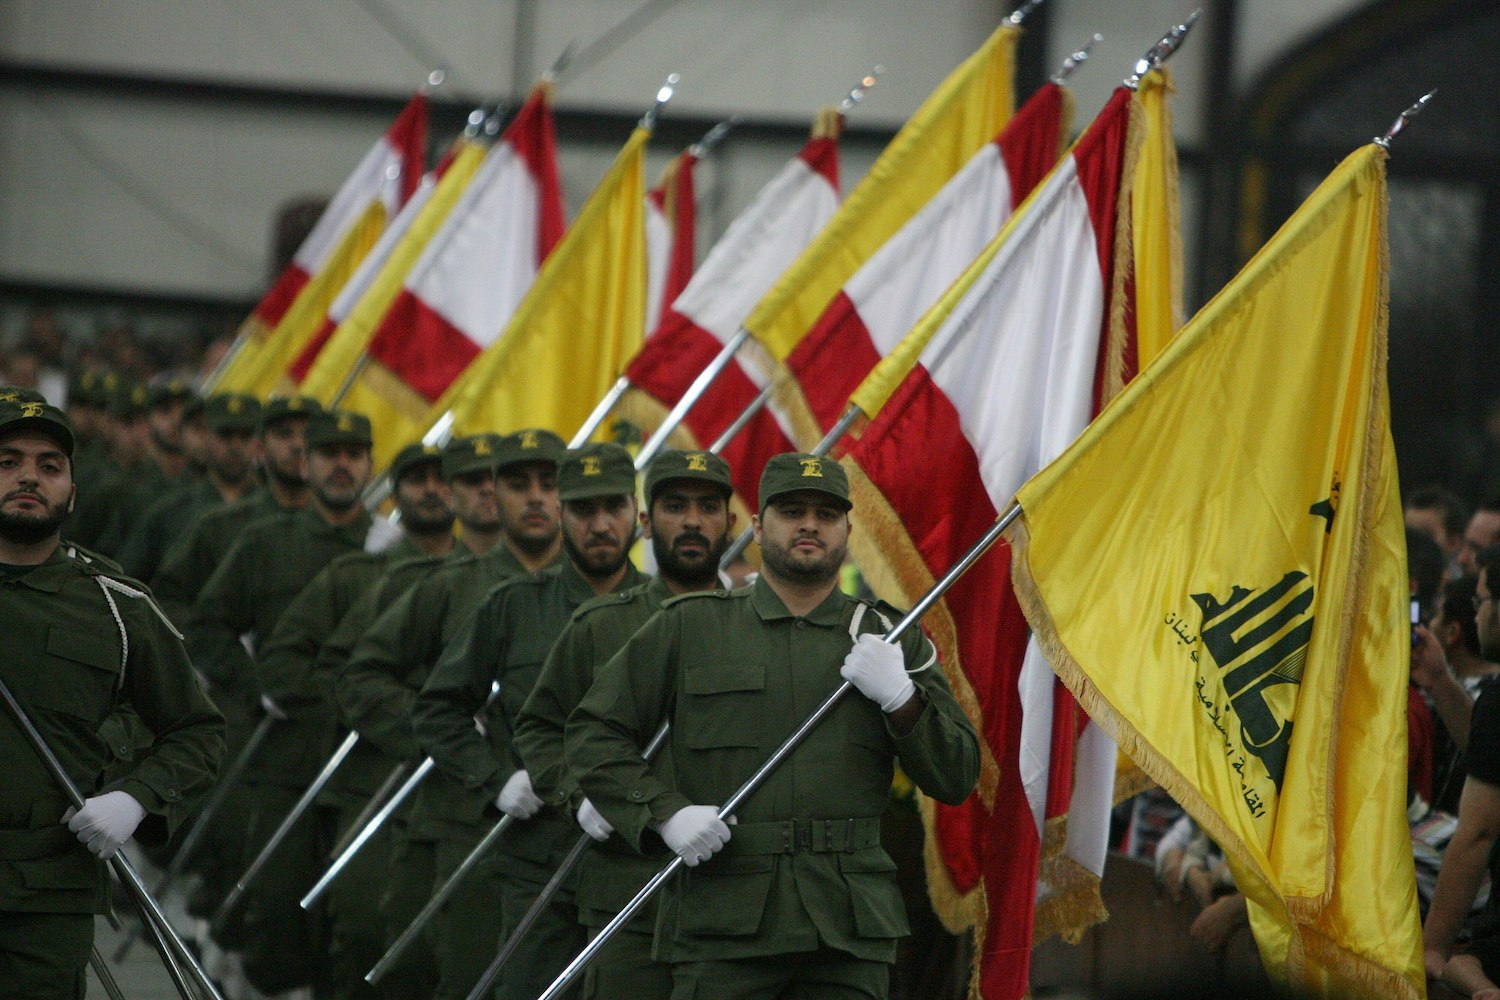 Hezbollah fighters march during a ceremony. (khamenei.ir/CC BY 4.0)